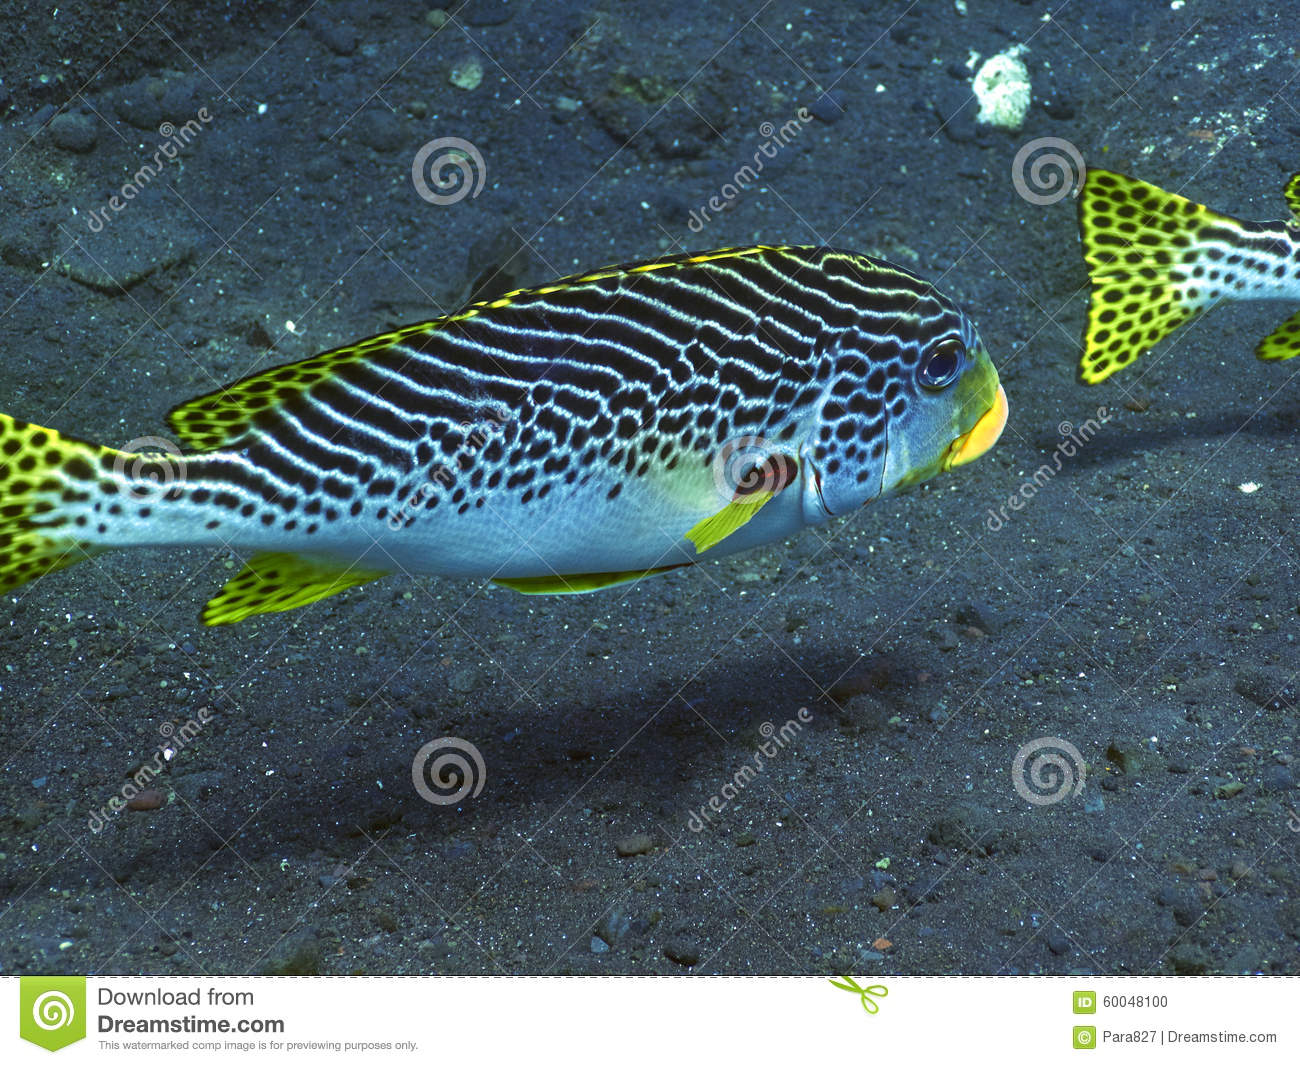 Sweetlips fish stock photo image 60048100 for Sweet lips fish